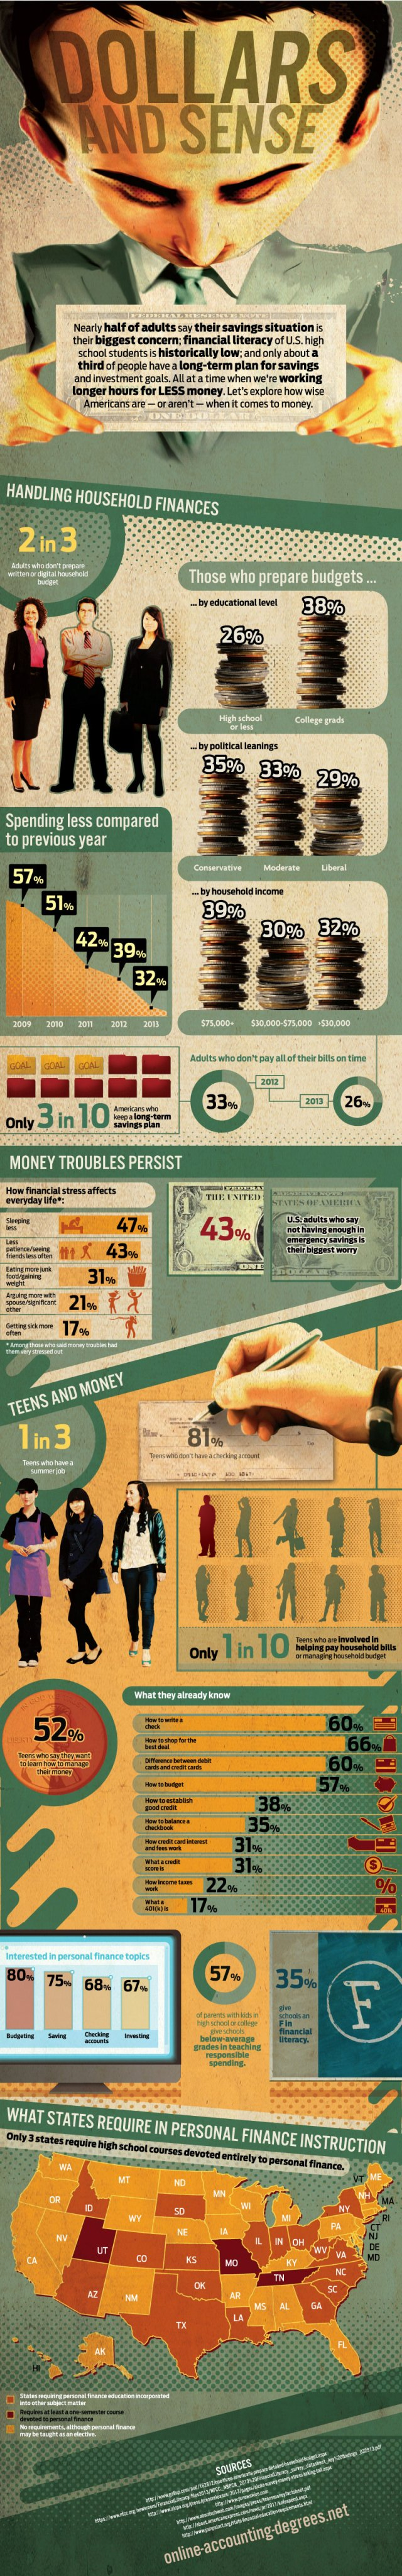 Making Sense of Money Graphic by The Financial Brand